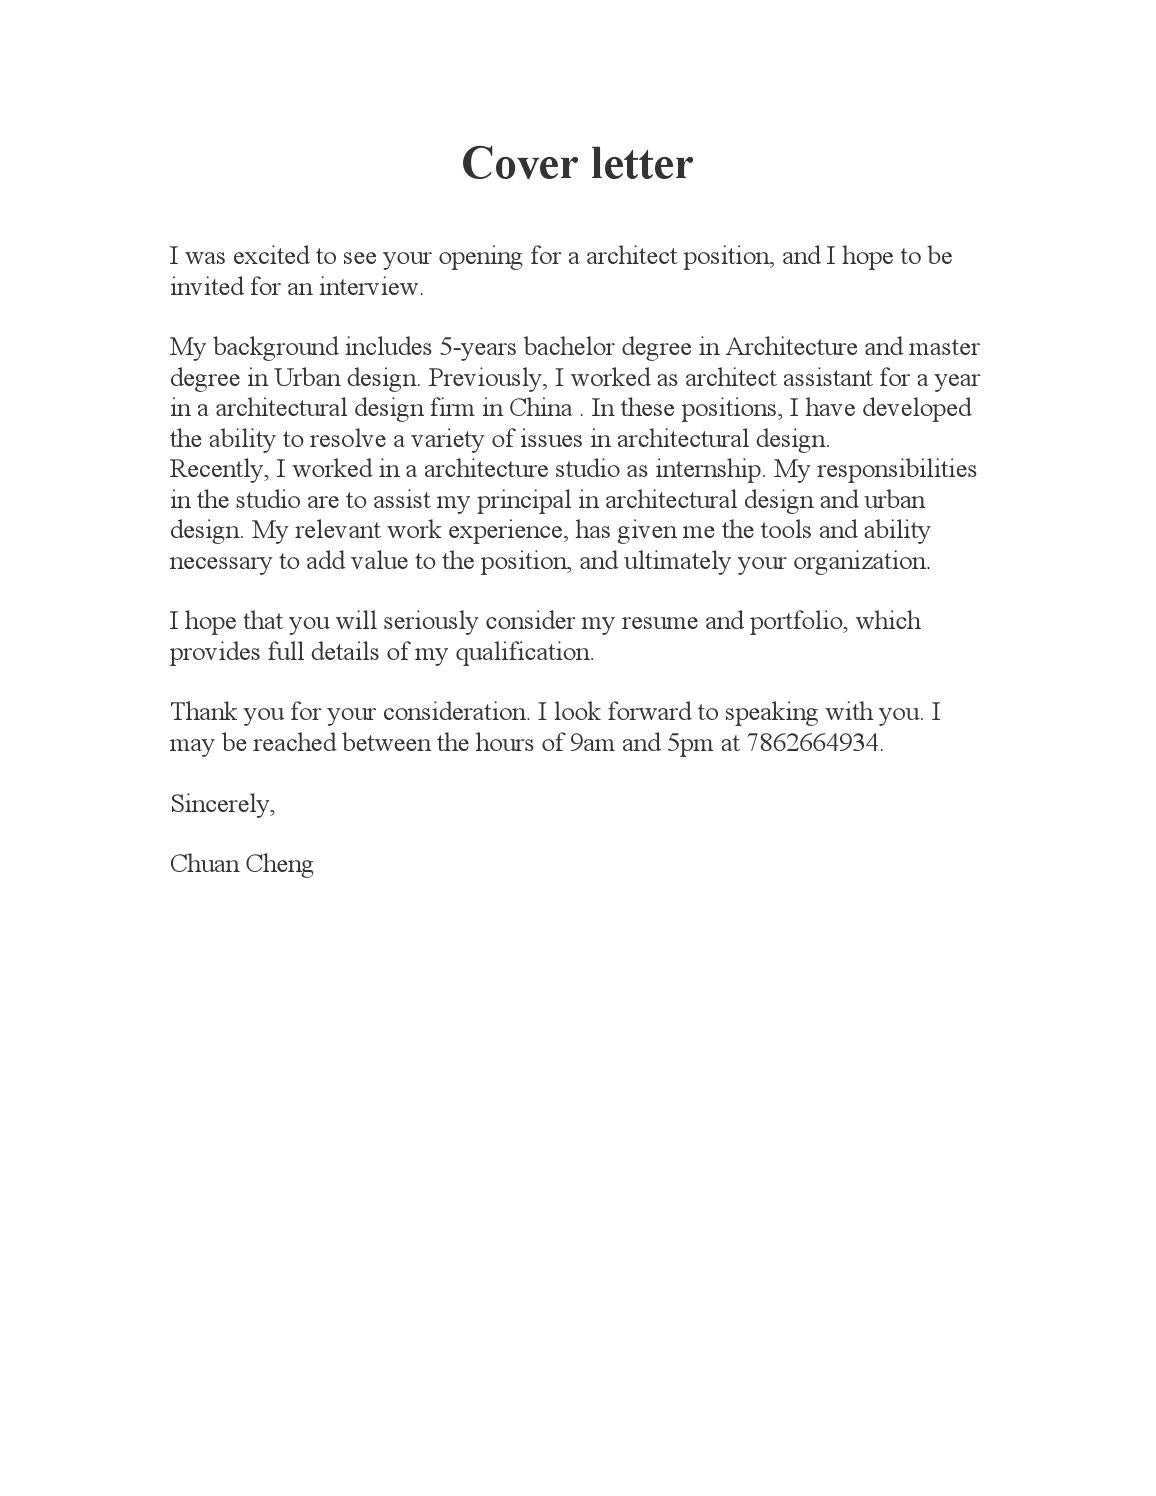 Cover Letter Resume Portfolio By Chuancheng Issuu